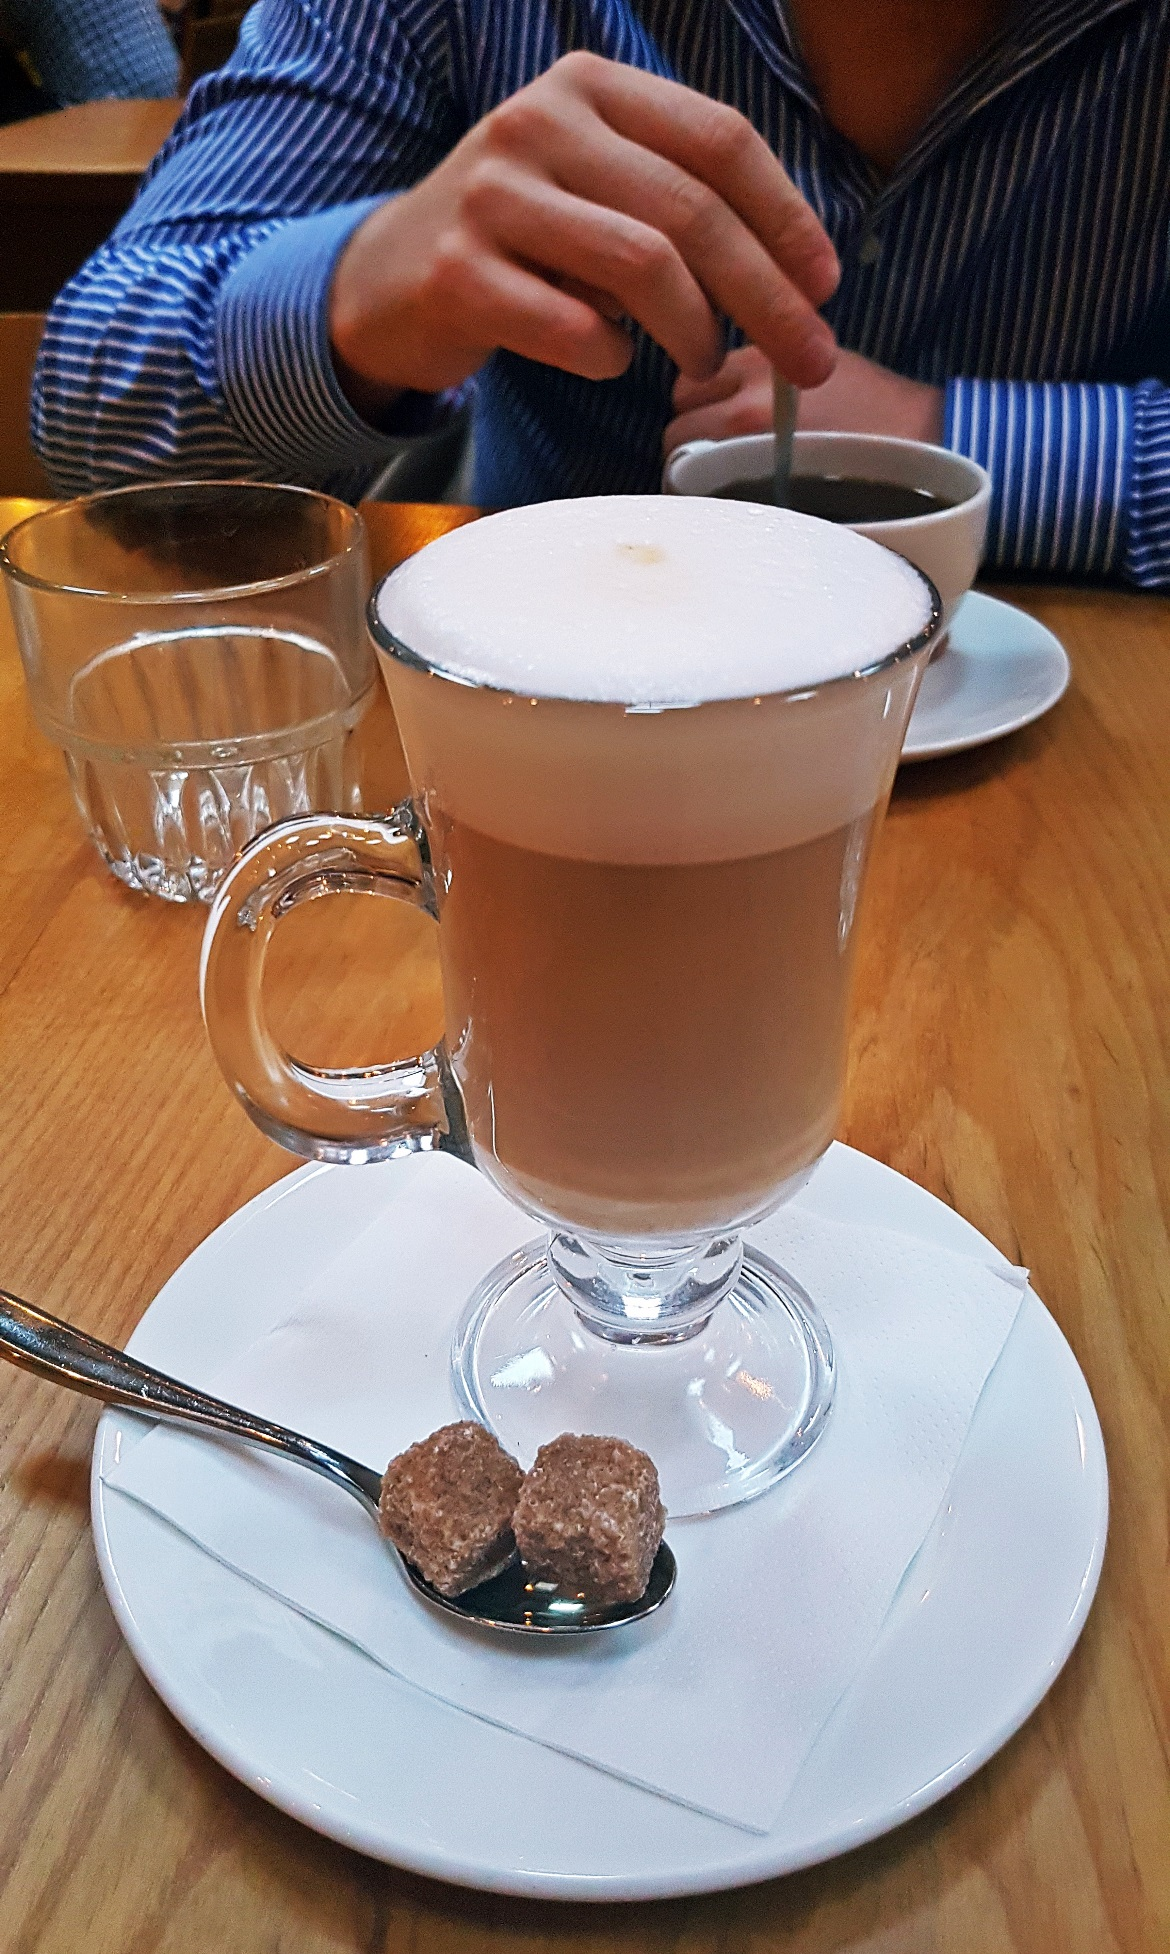 Decaf latte - Restaurant Review of Shears Yard, Leeds Restaurant Week menu by BeckyBecky Blogs